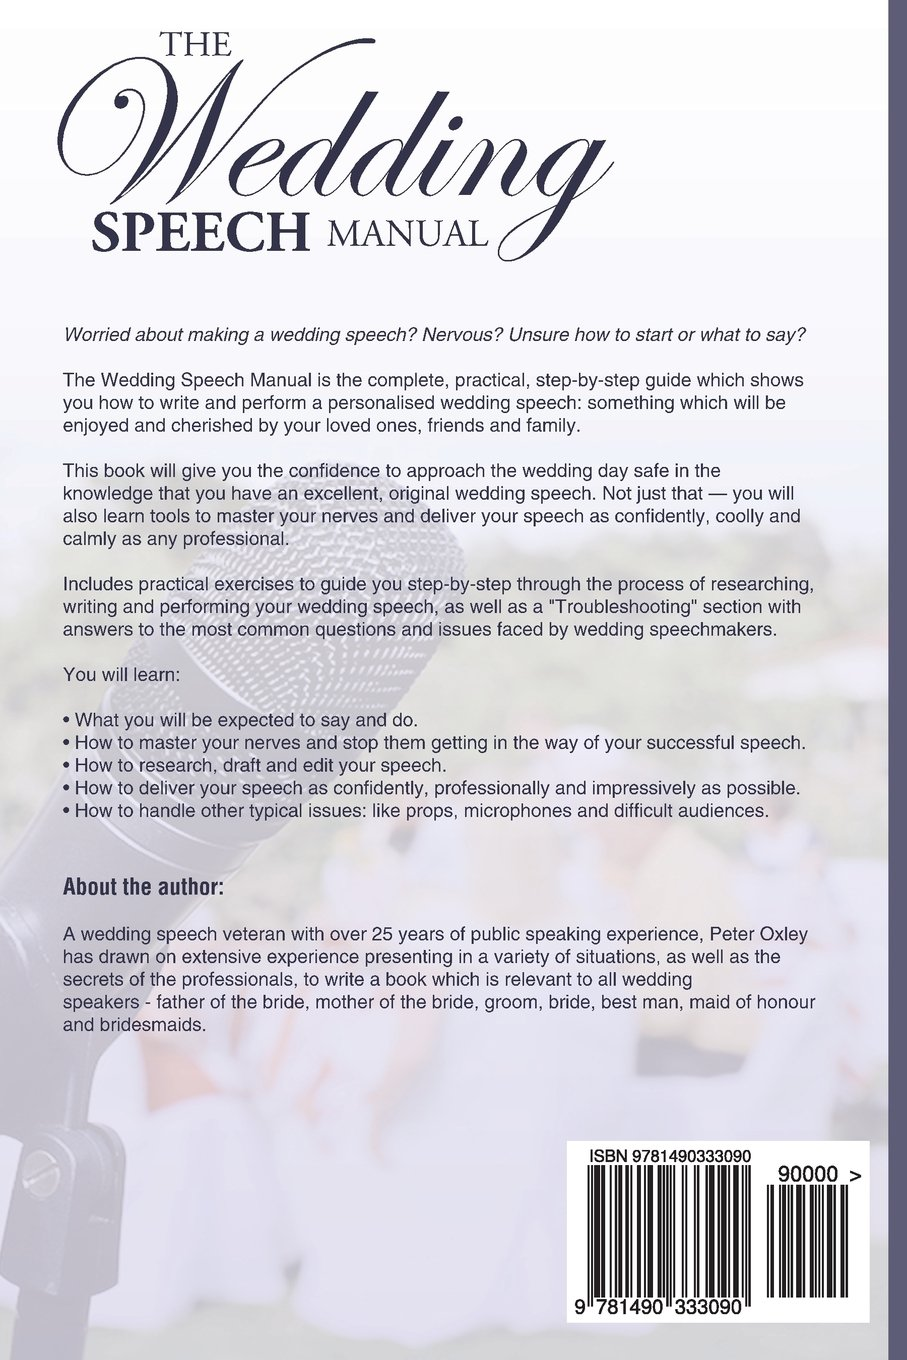 the wedding speech manual the complete guide to preparing writing and performing your wedding speech mr peter oxley 9781490333090 amazoncom books